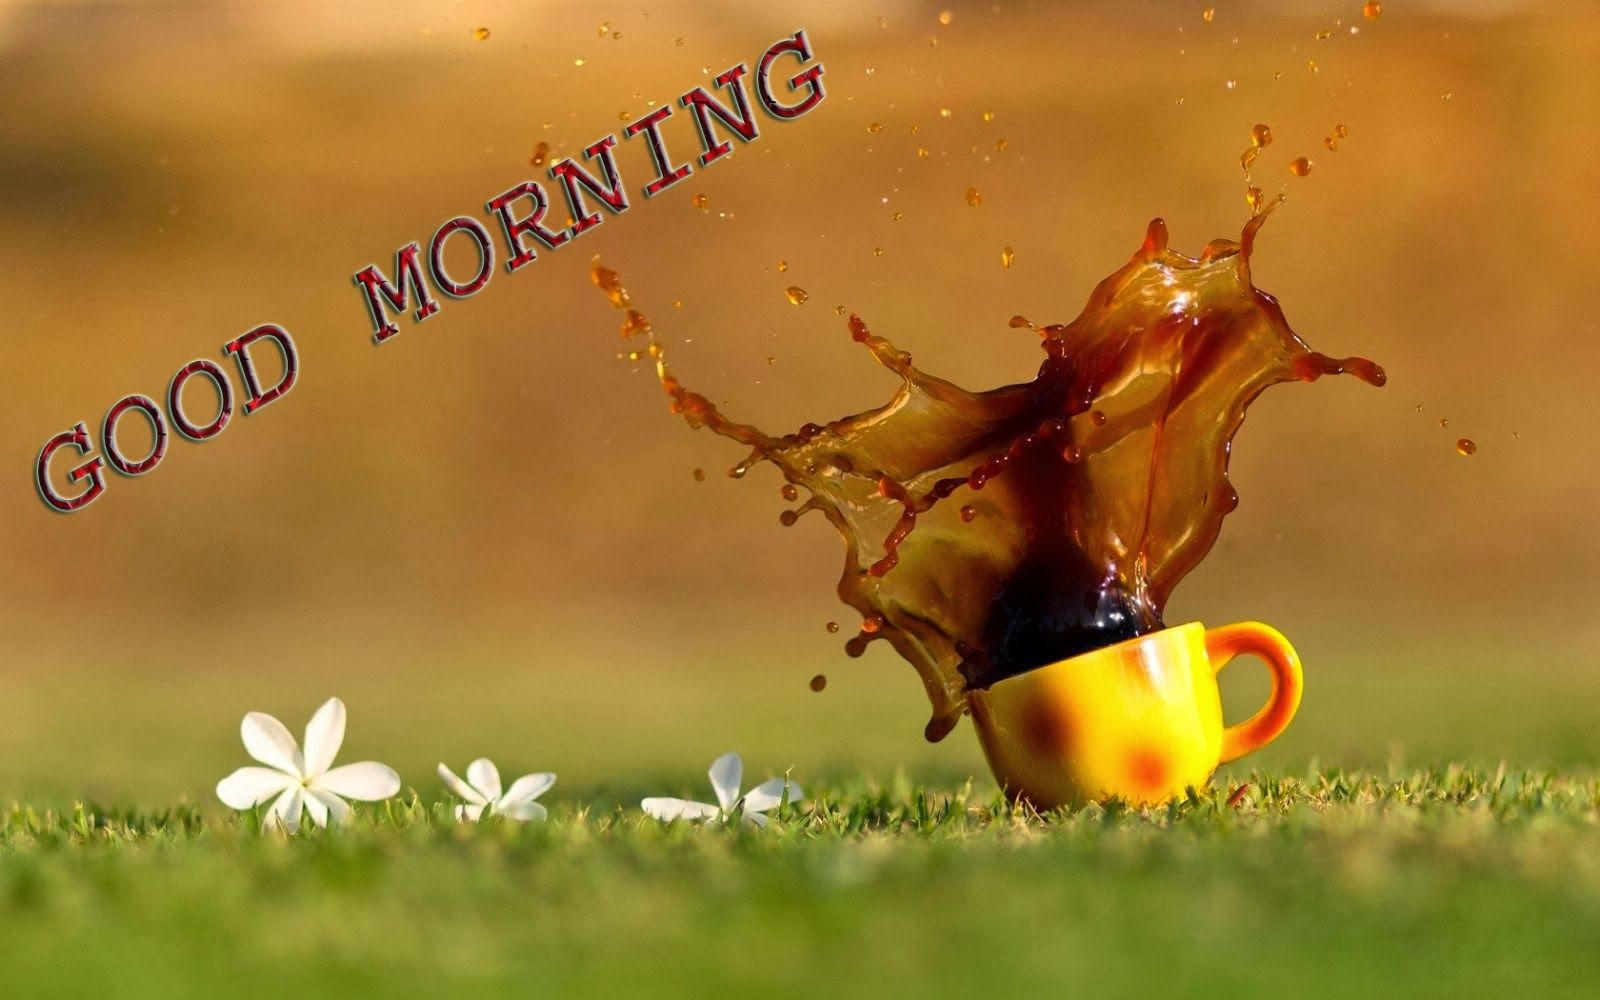 Download Good Morning Love Images, Wallpapers, Pictures, Photos, Wishes, SMS, cards, Quotes ...